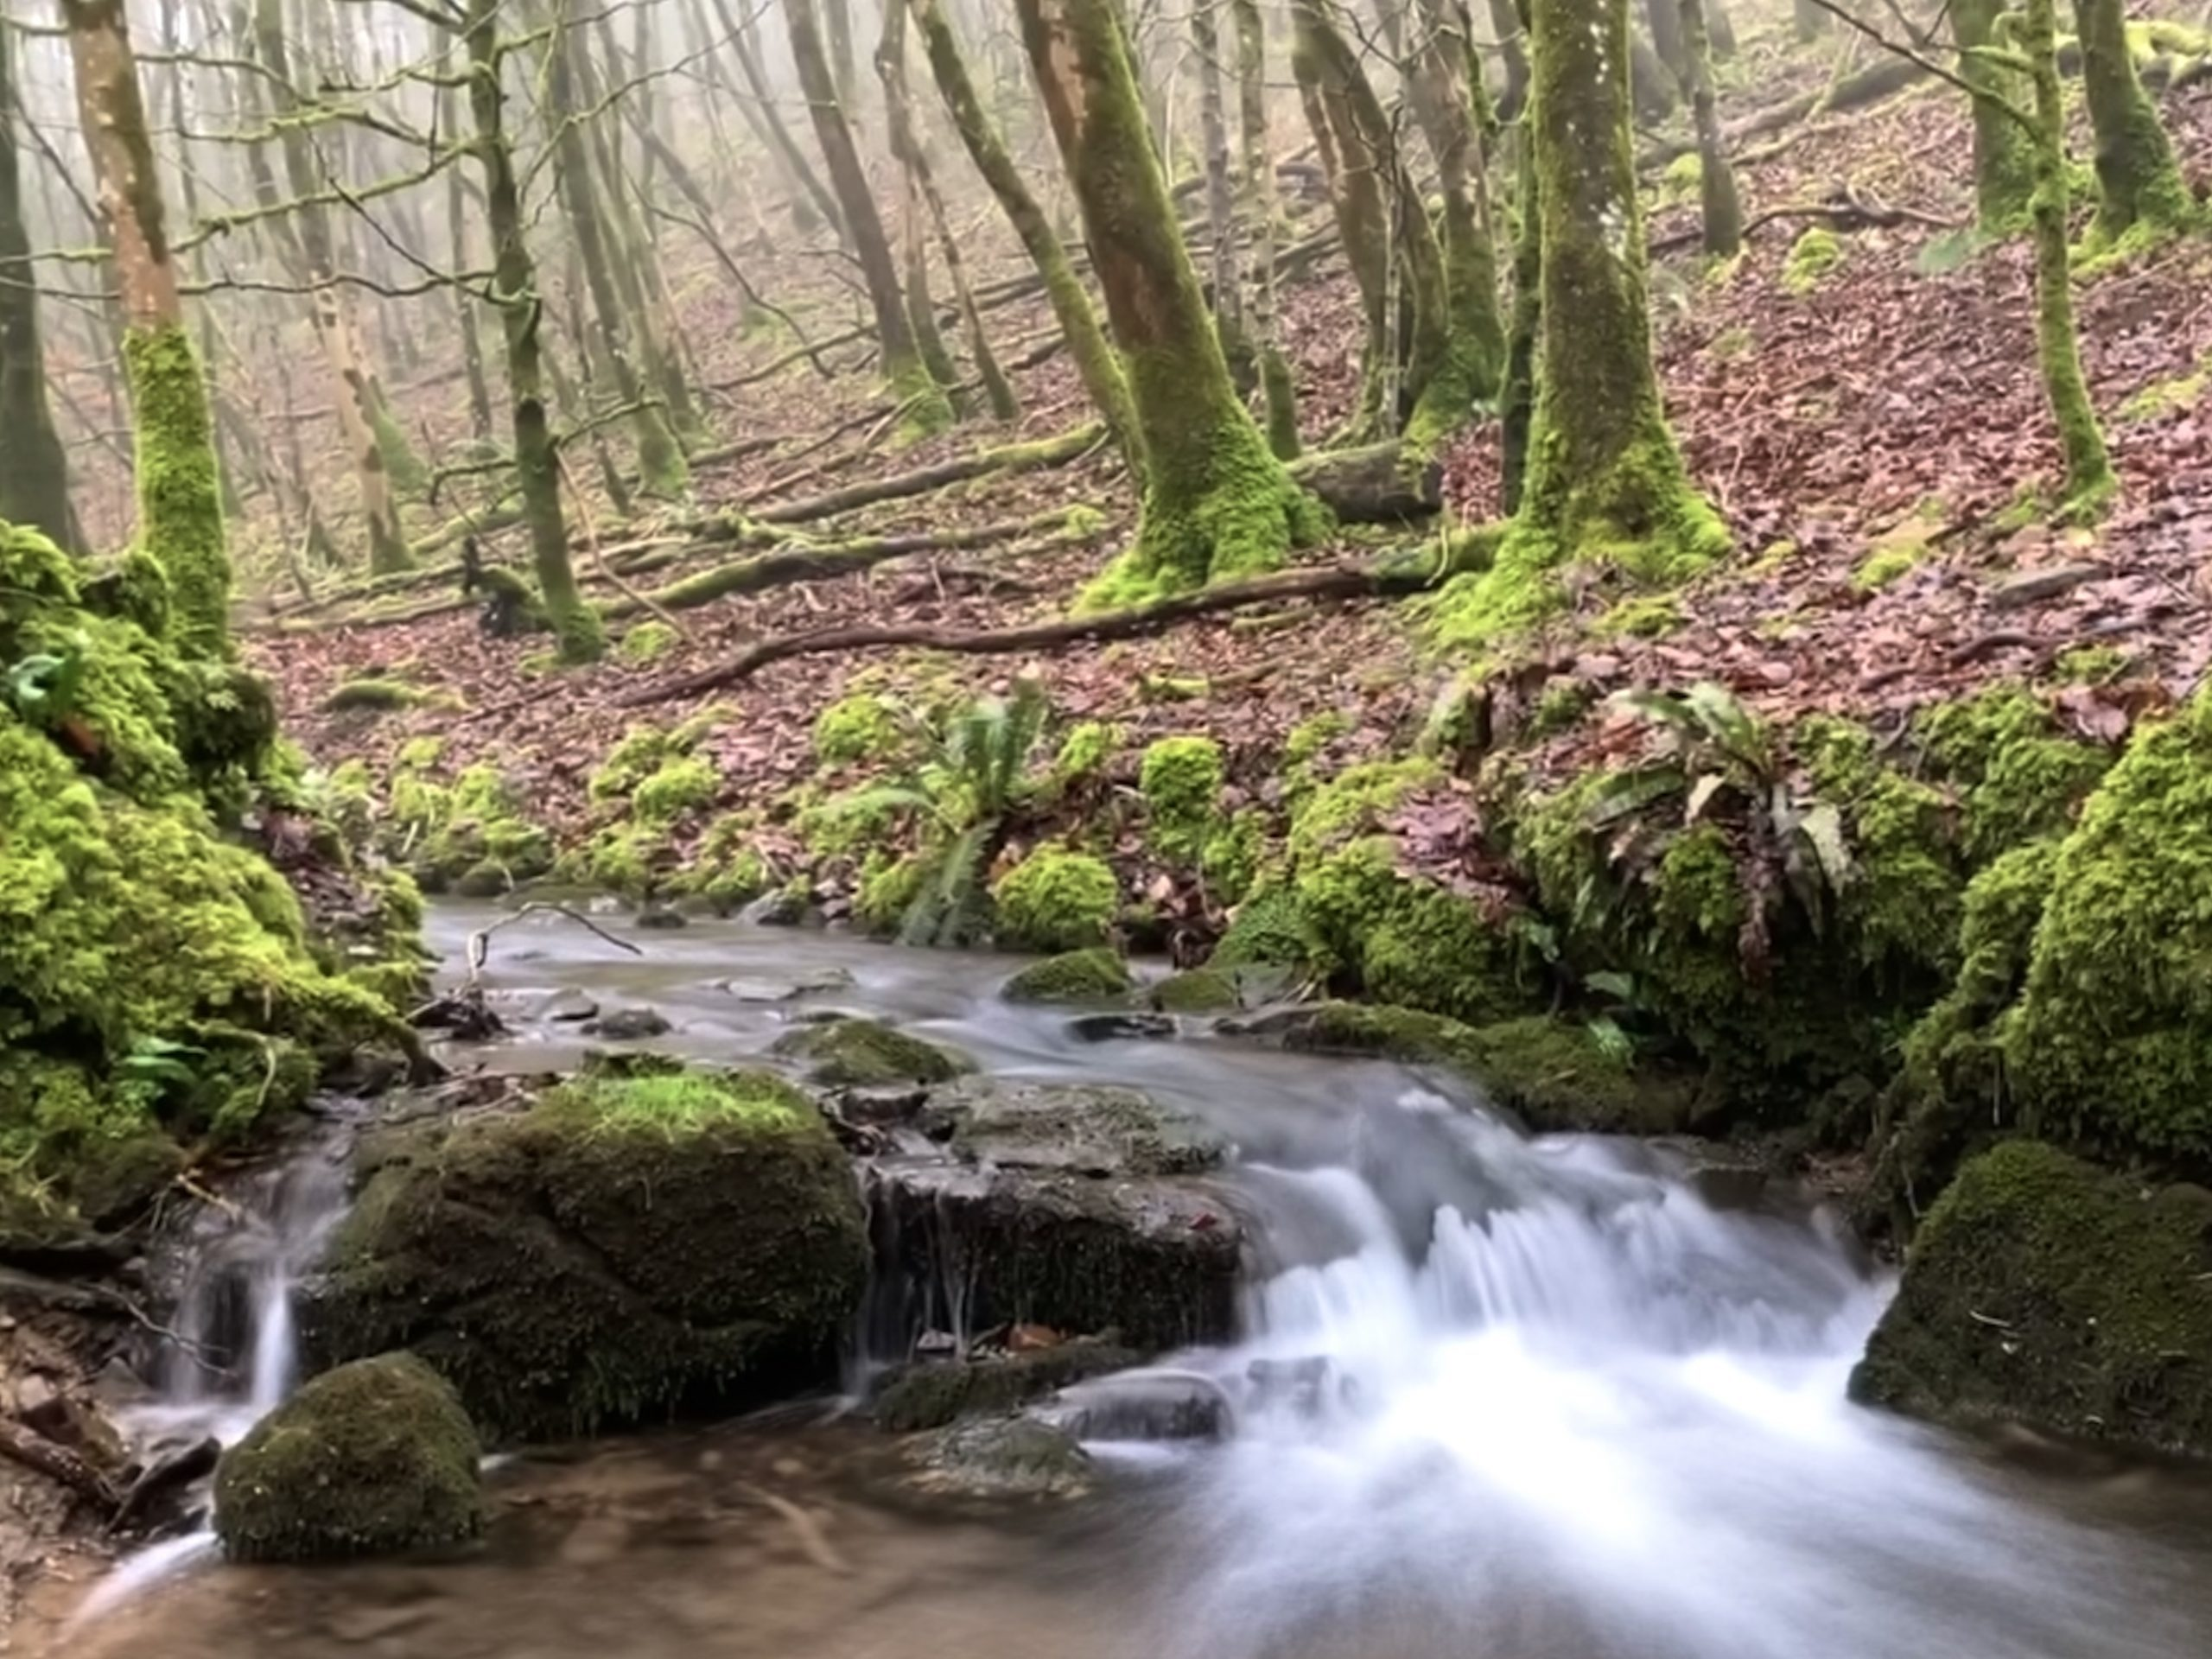 river in woodland with blurred water